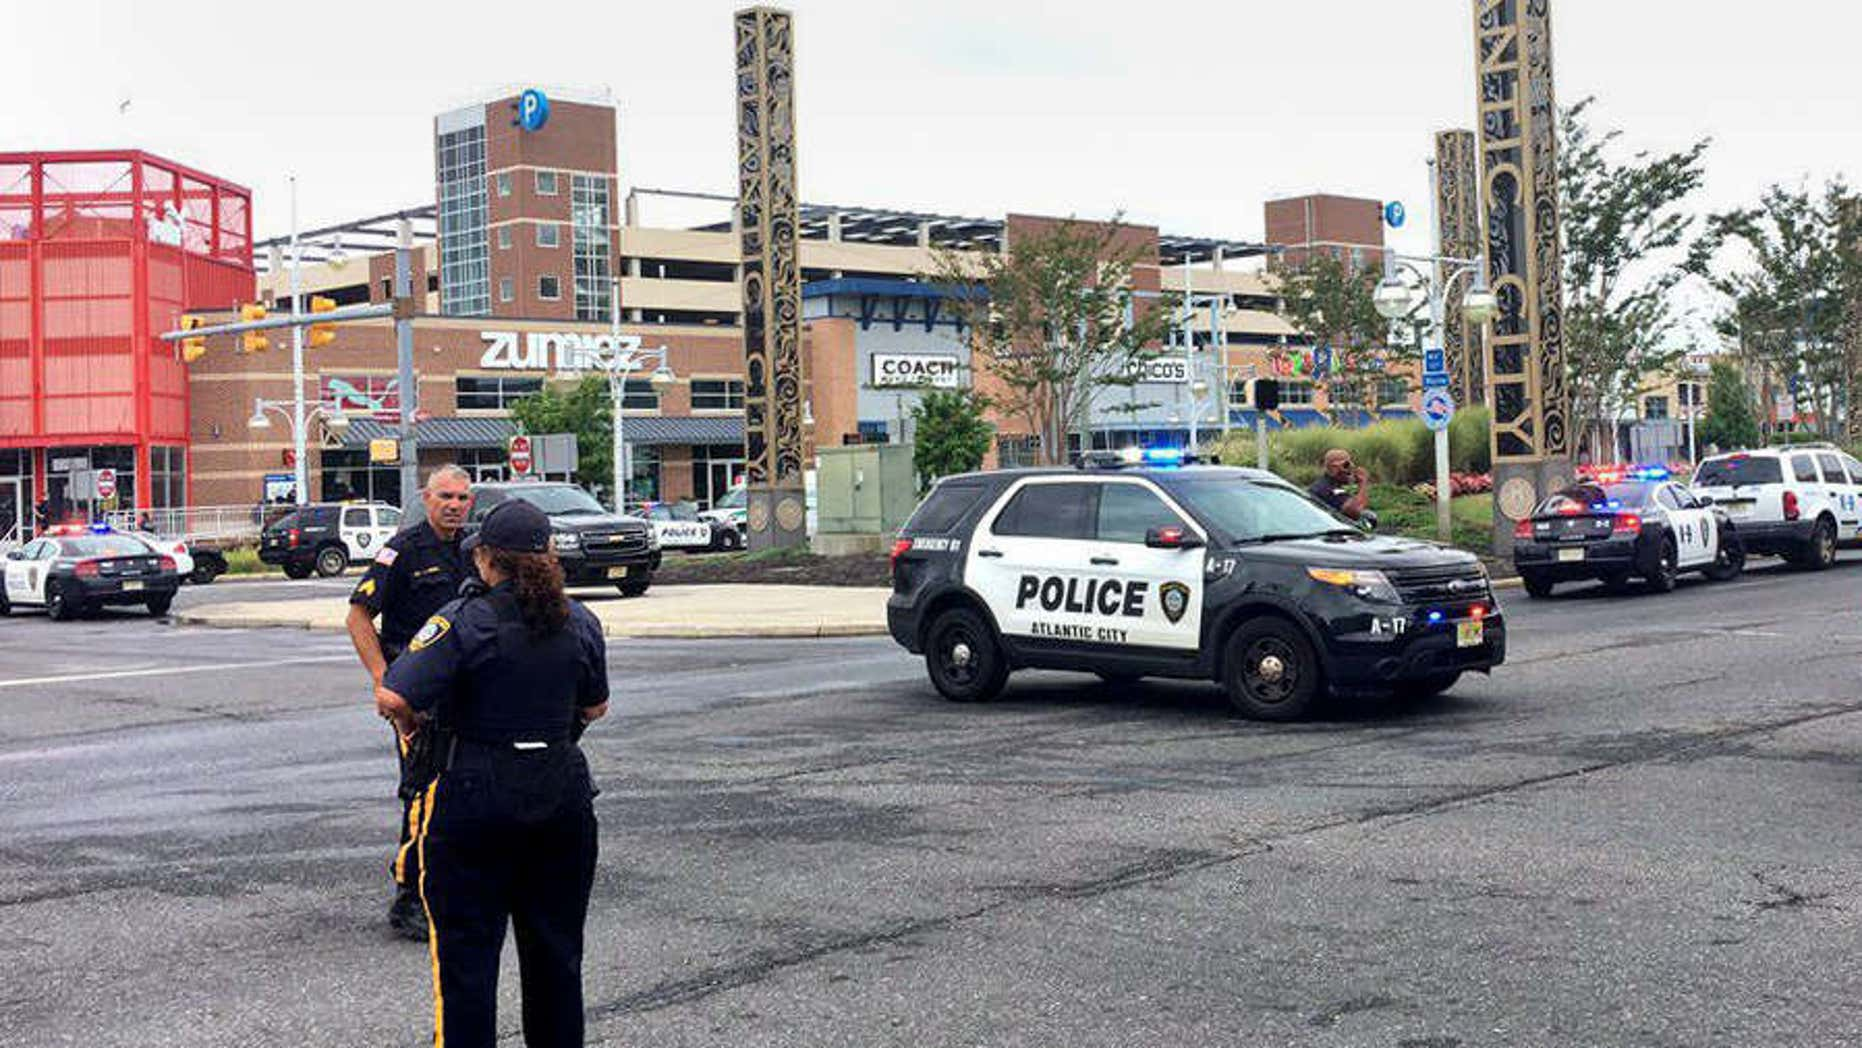 Sept. 1, 2016: Police officers block off a section of roadway adjacent to Tanger Outlets The Walk shopping center in Atlantic City, N.J., following a shooting incident.